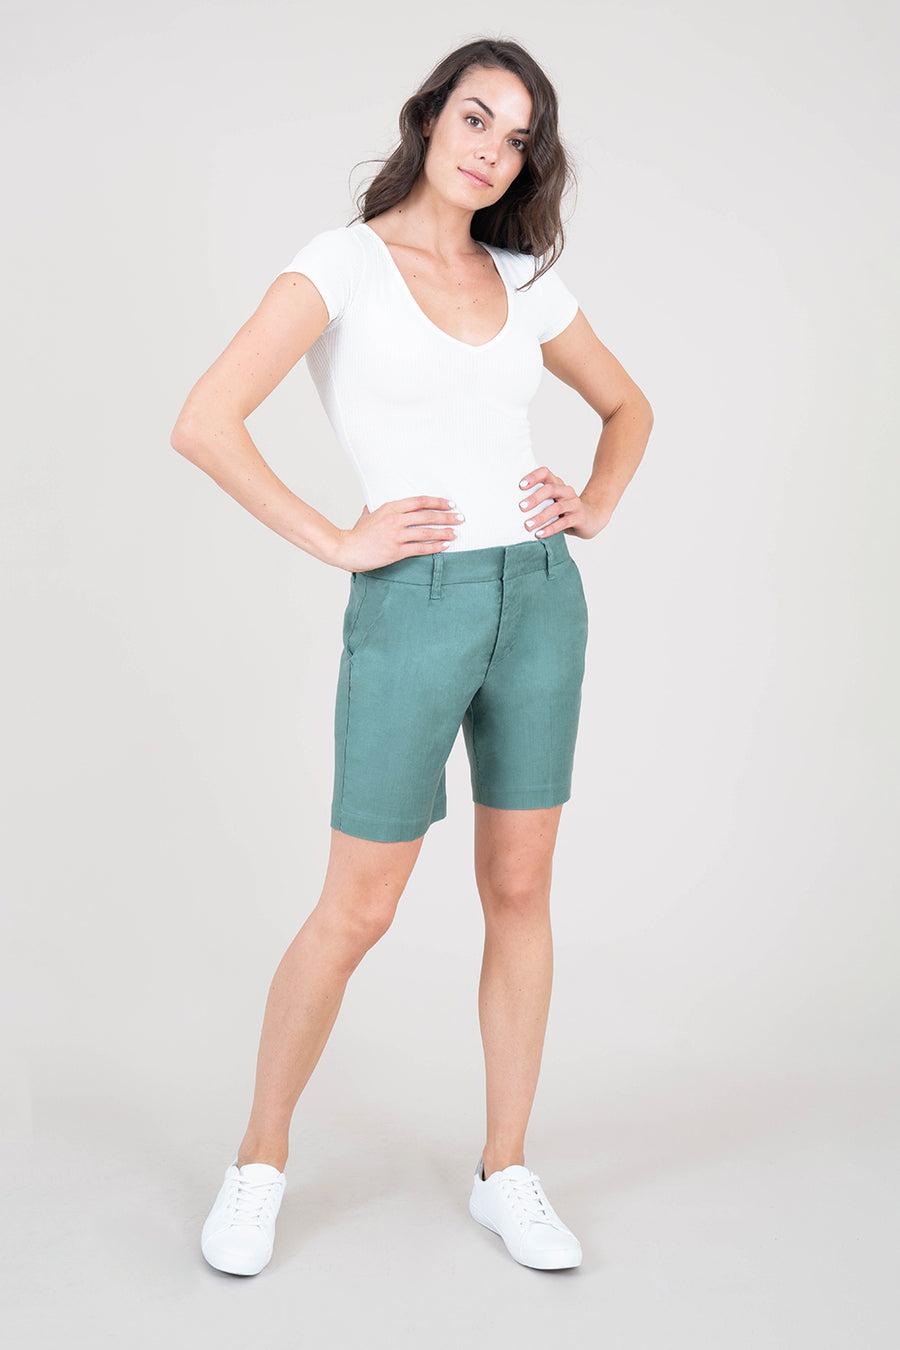 Cindie Stretch Linen Short - level99jeans